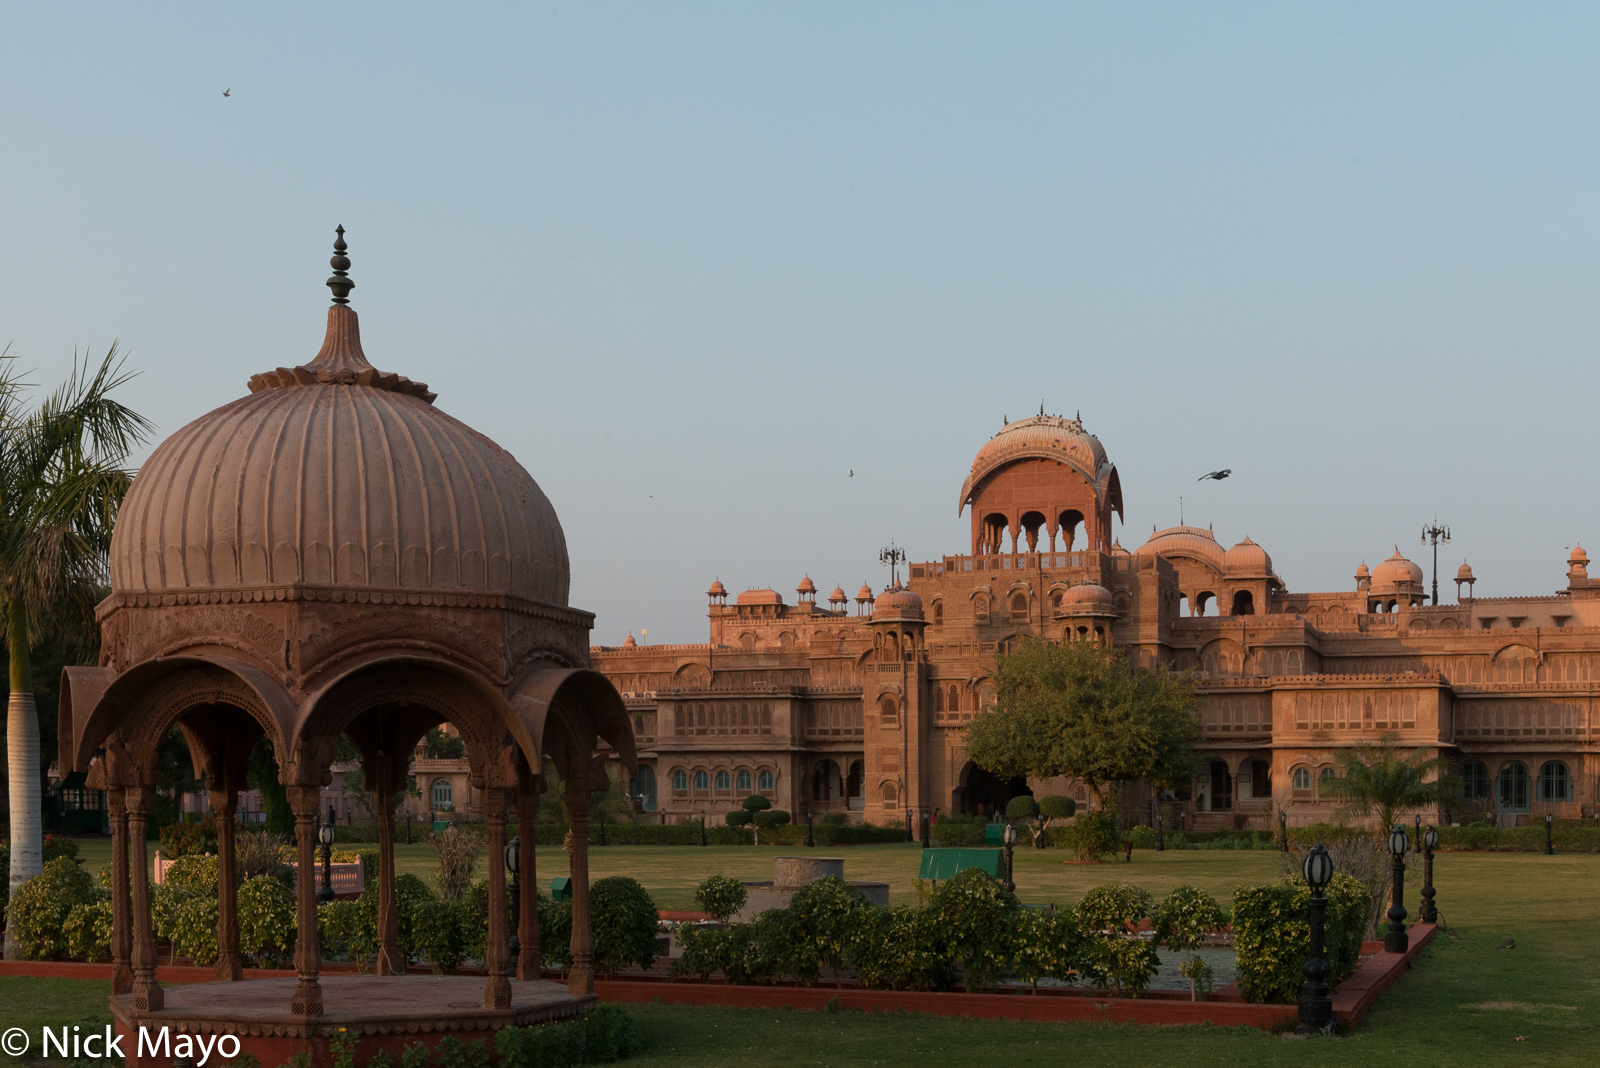 Hotel, India, Pavilion, Rajasthan, photo